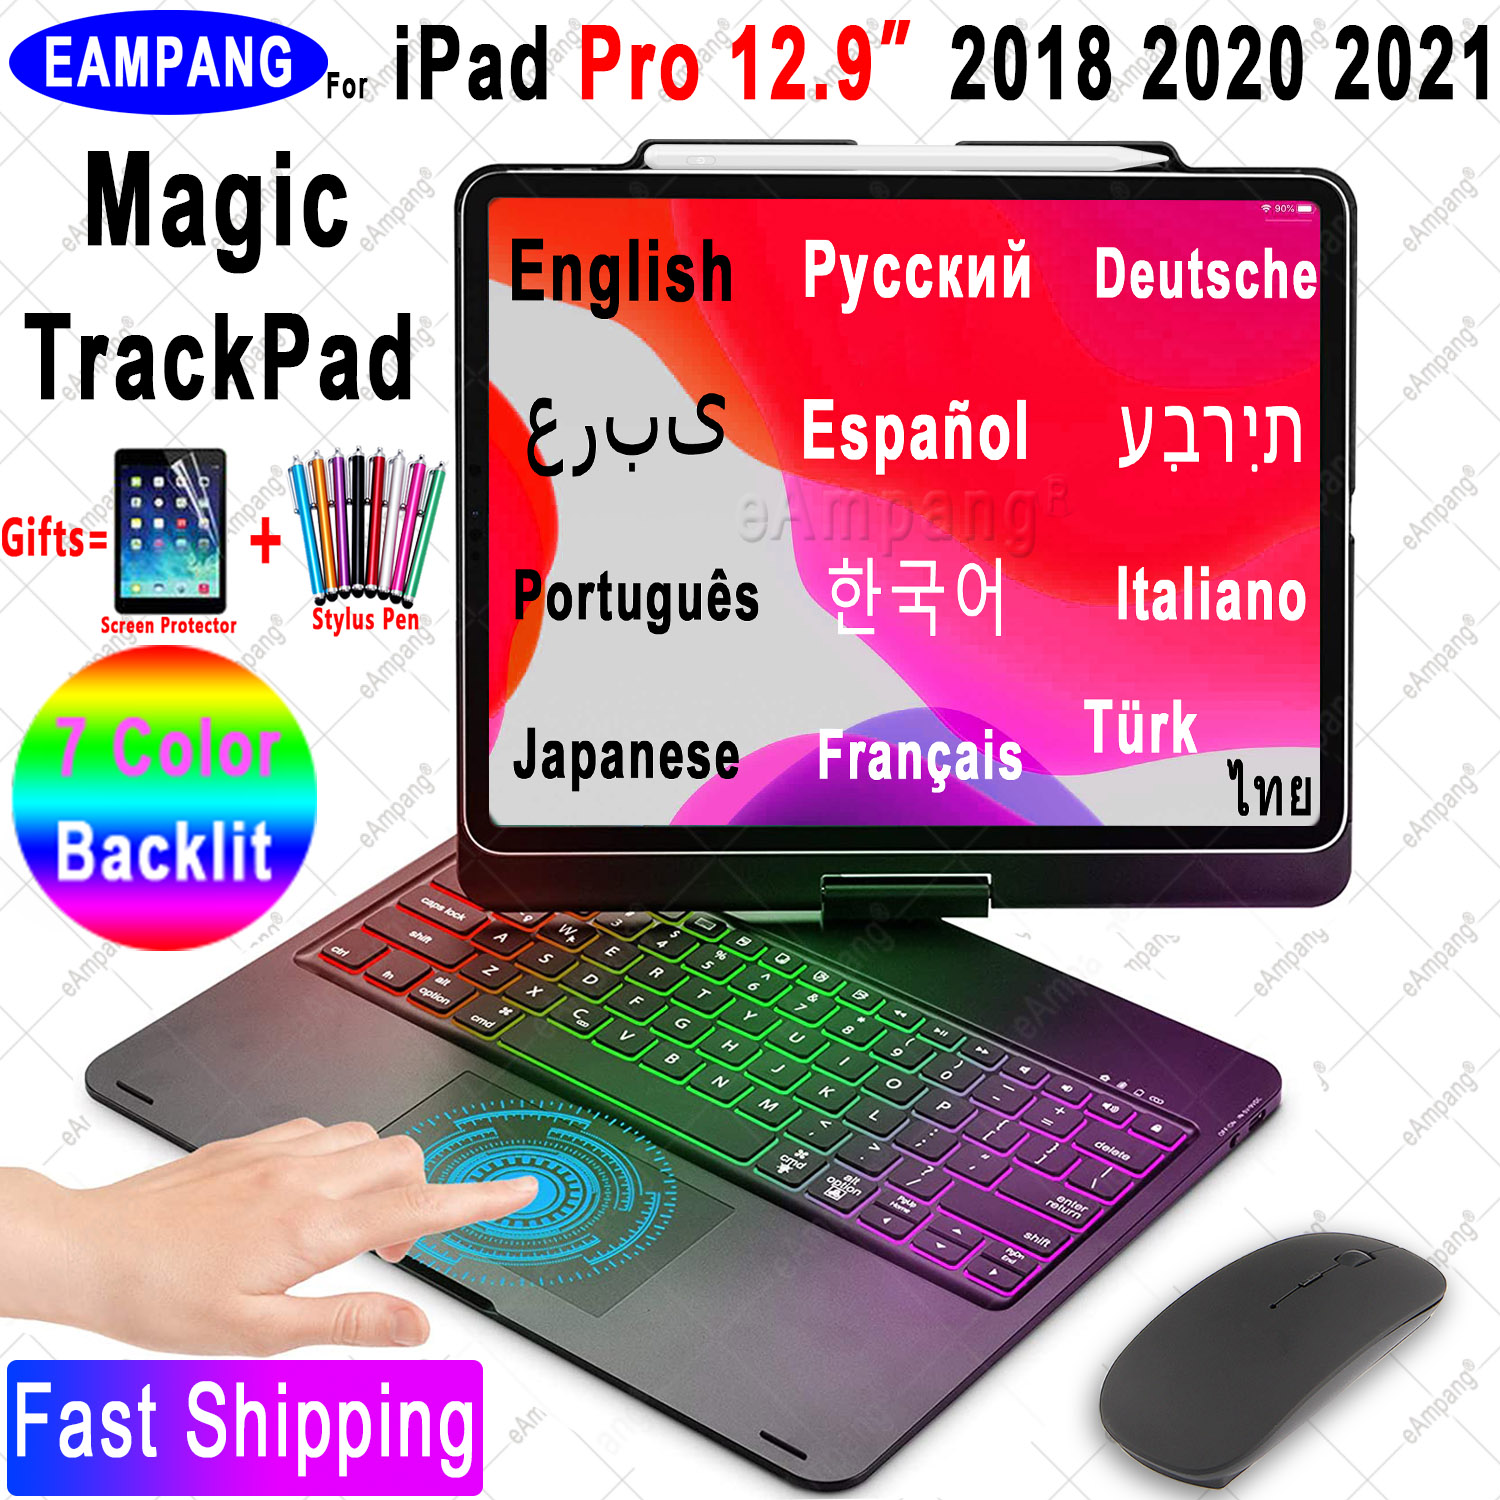 Permalink to Magic Touchpad Keyboard Mouse Case for iPad Pro 12.9 2018 2020 2021 Russian Arabic Korean Hebrew Spanish Portuguese Keyboard